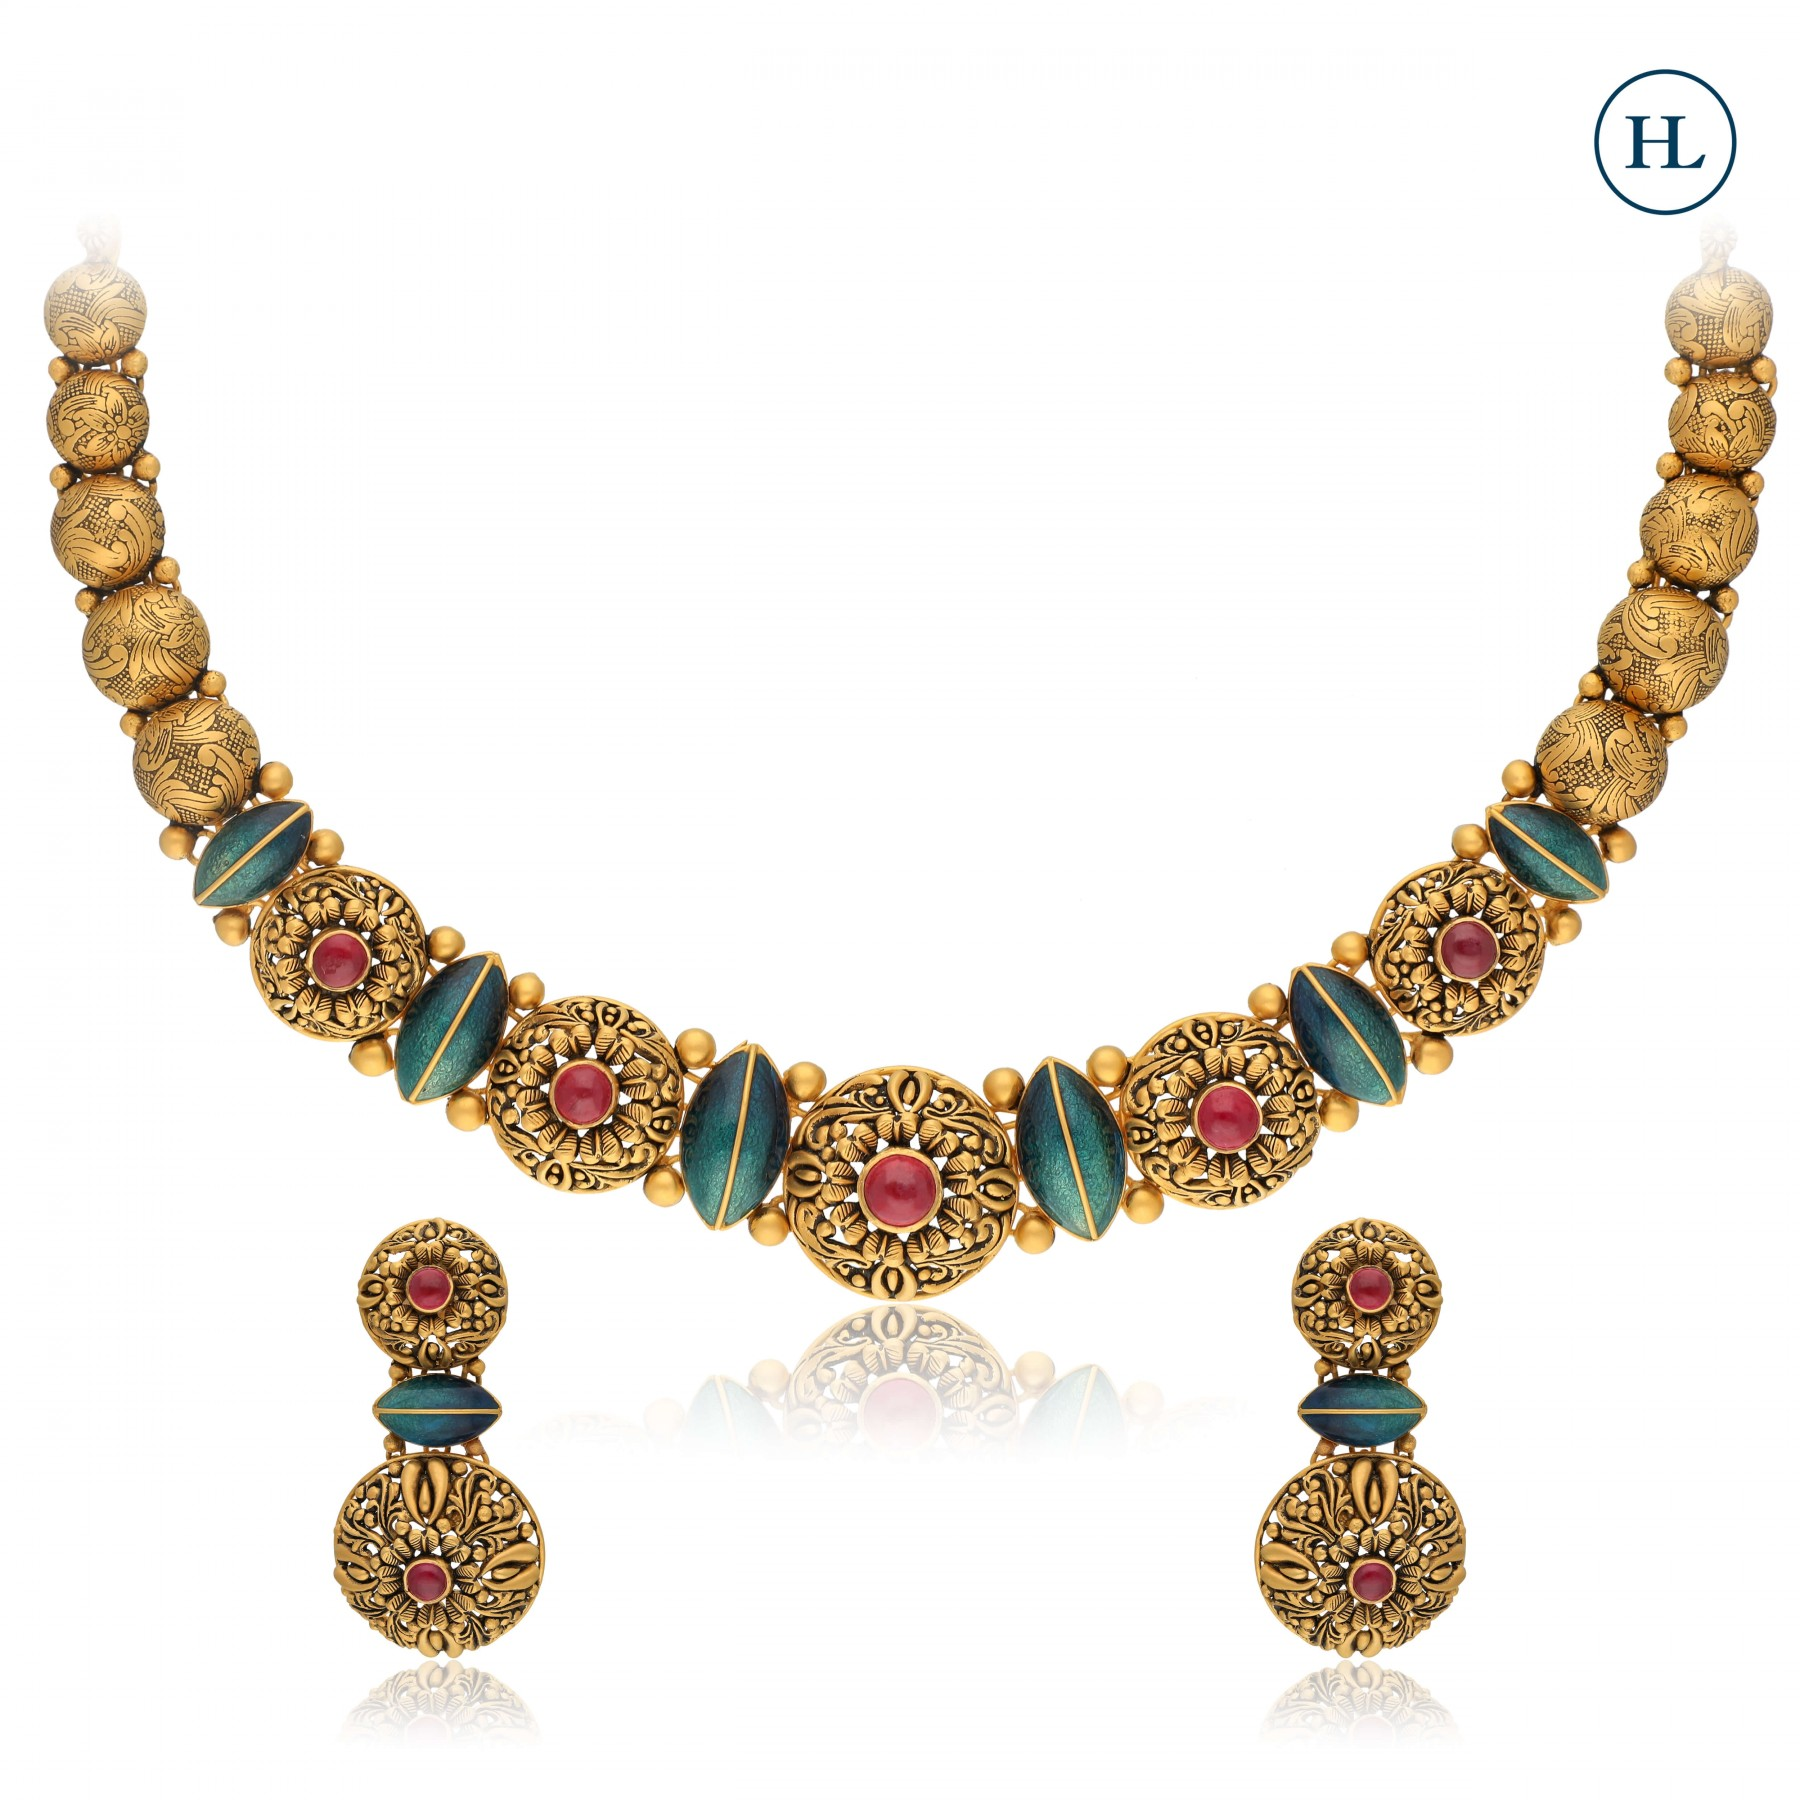 Antique-Styled Ruby & Gold Necklace Set